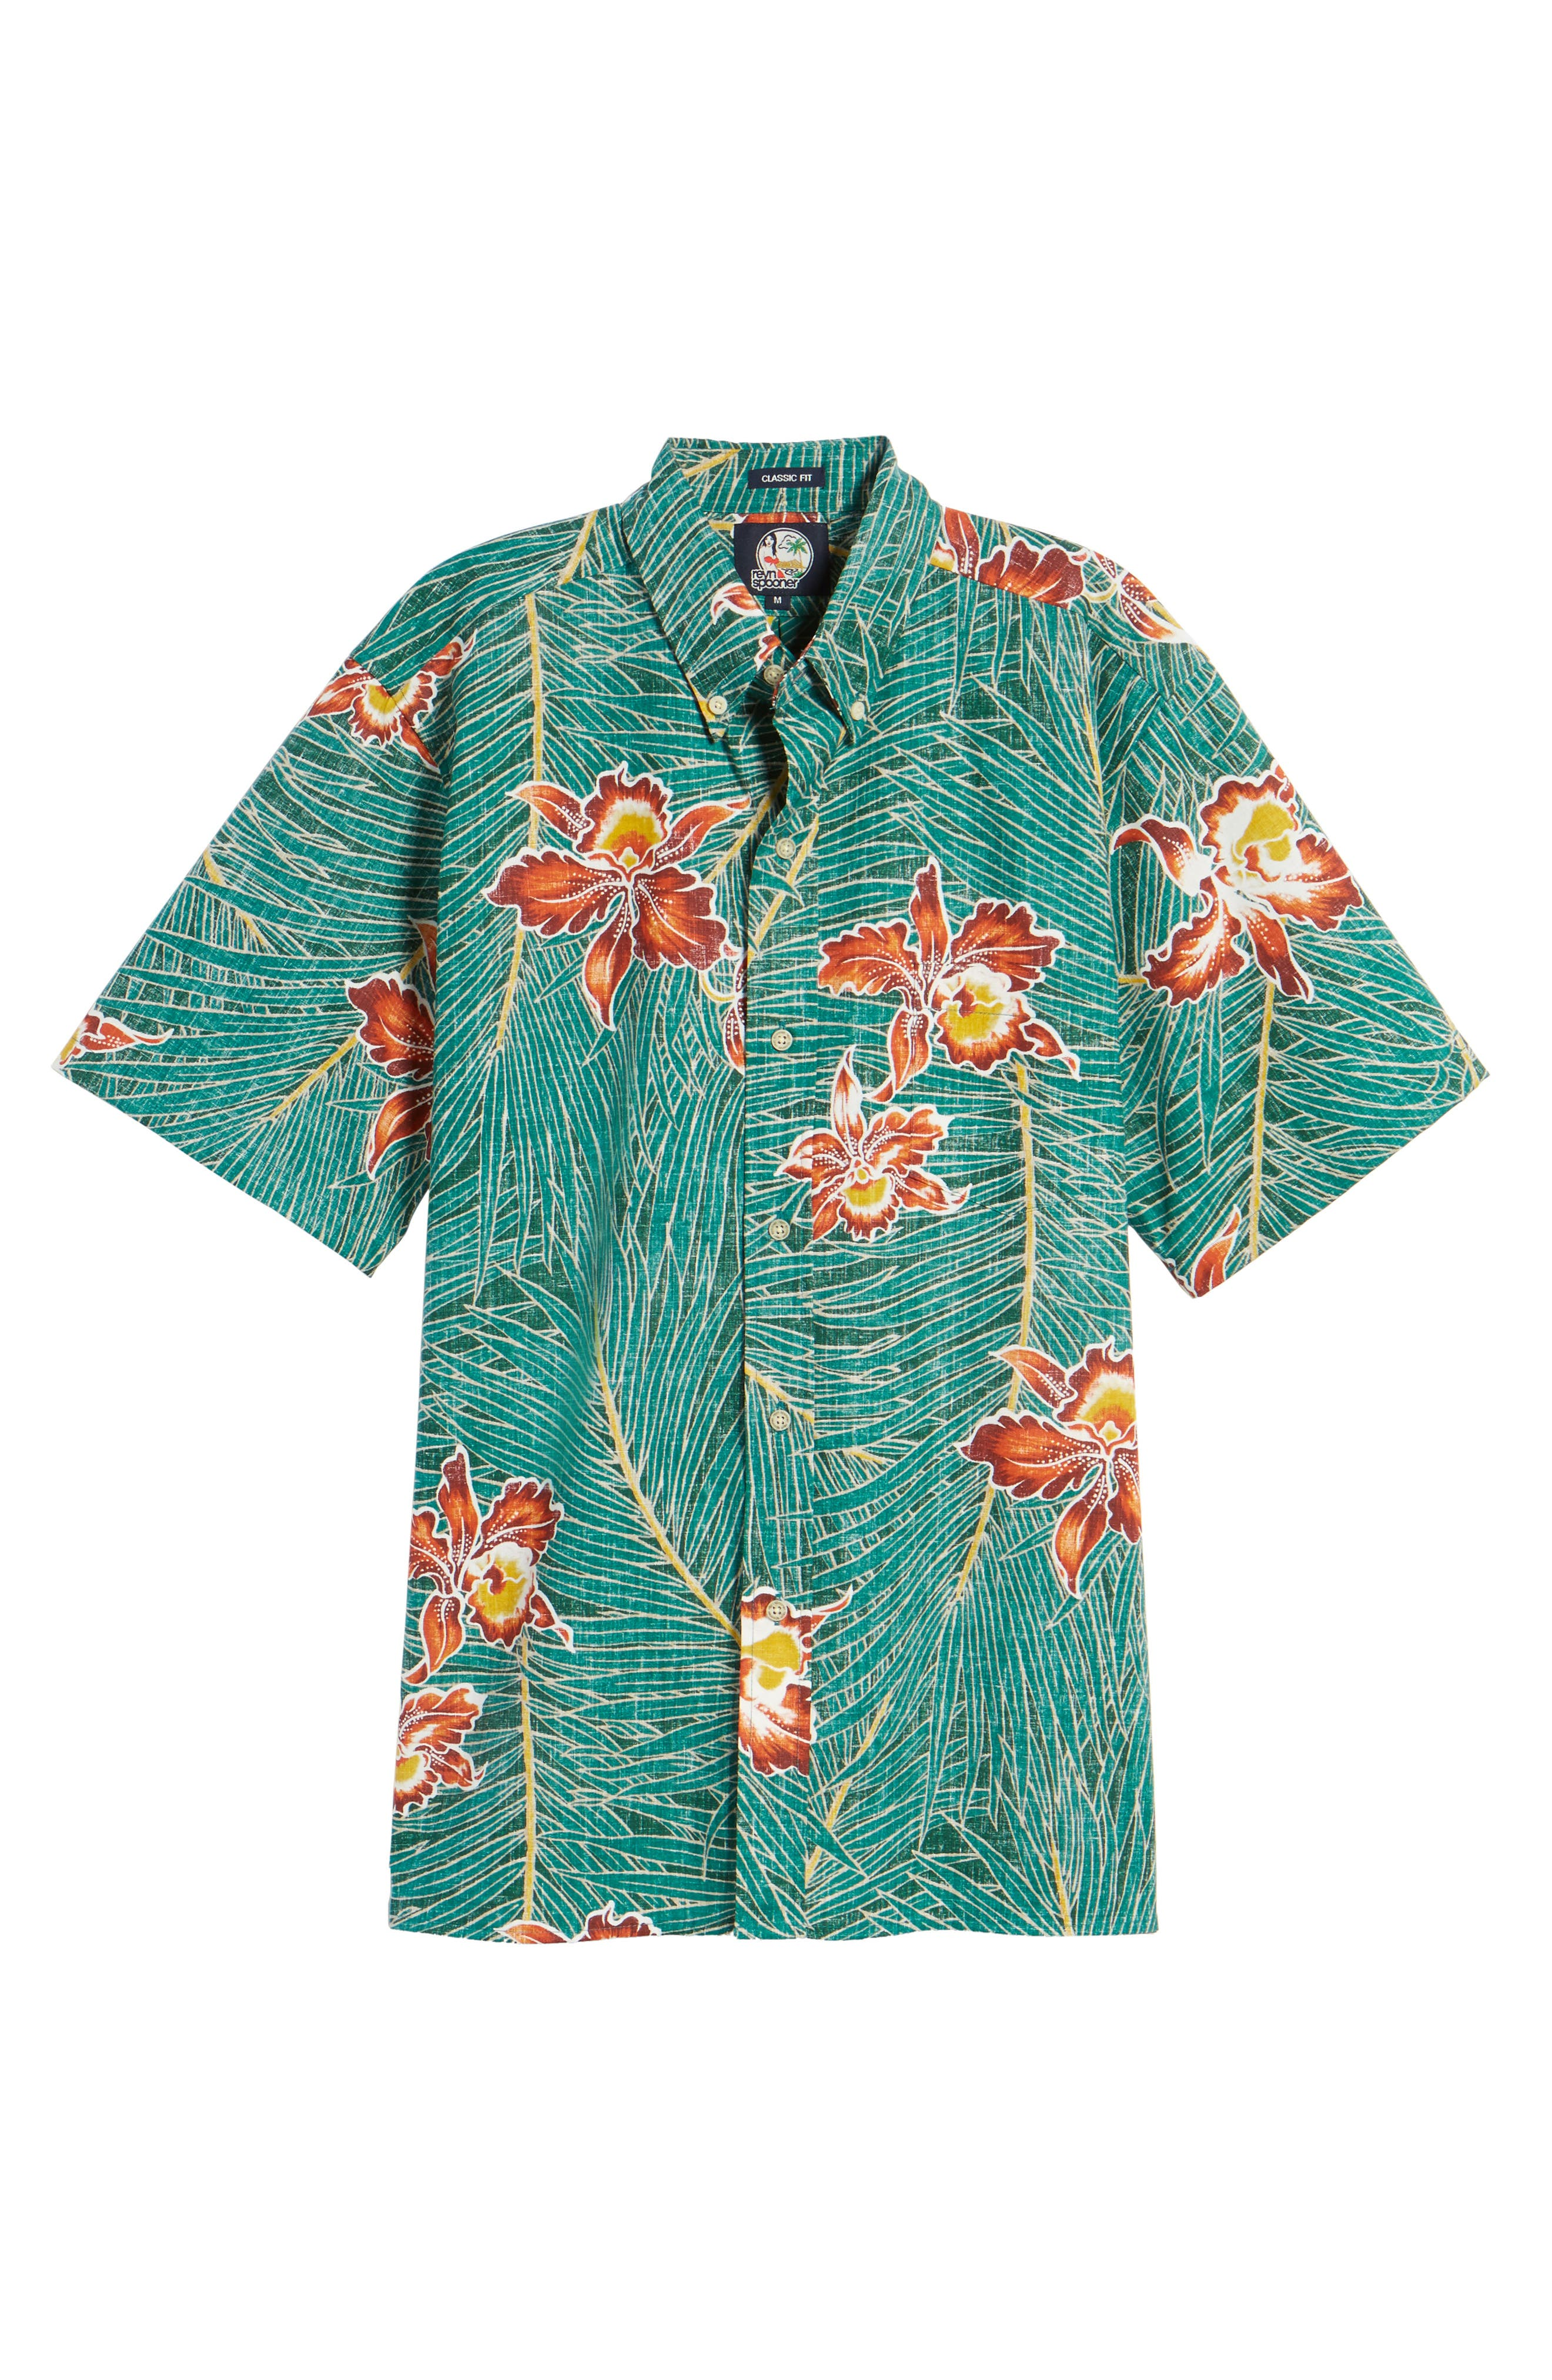 Okika Oasis Traditional Fit Sport Shirt,                             Alternate thumbnail 6, color,                             310